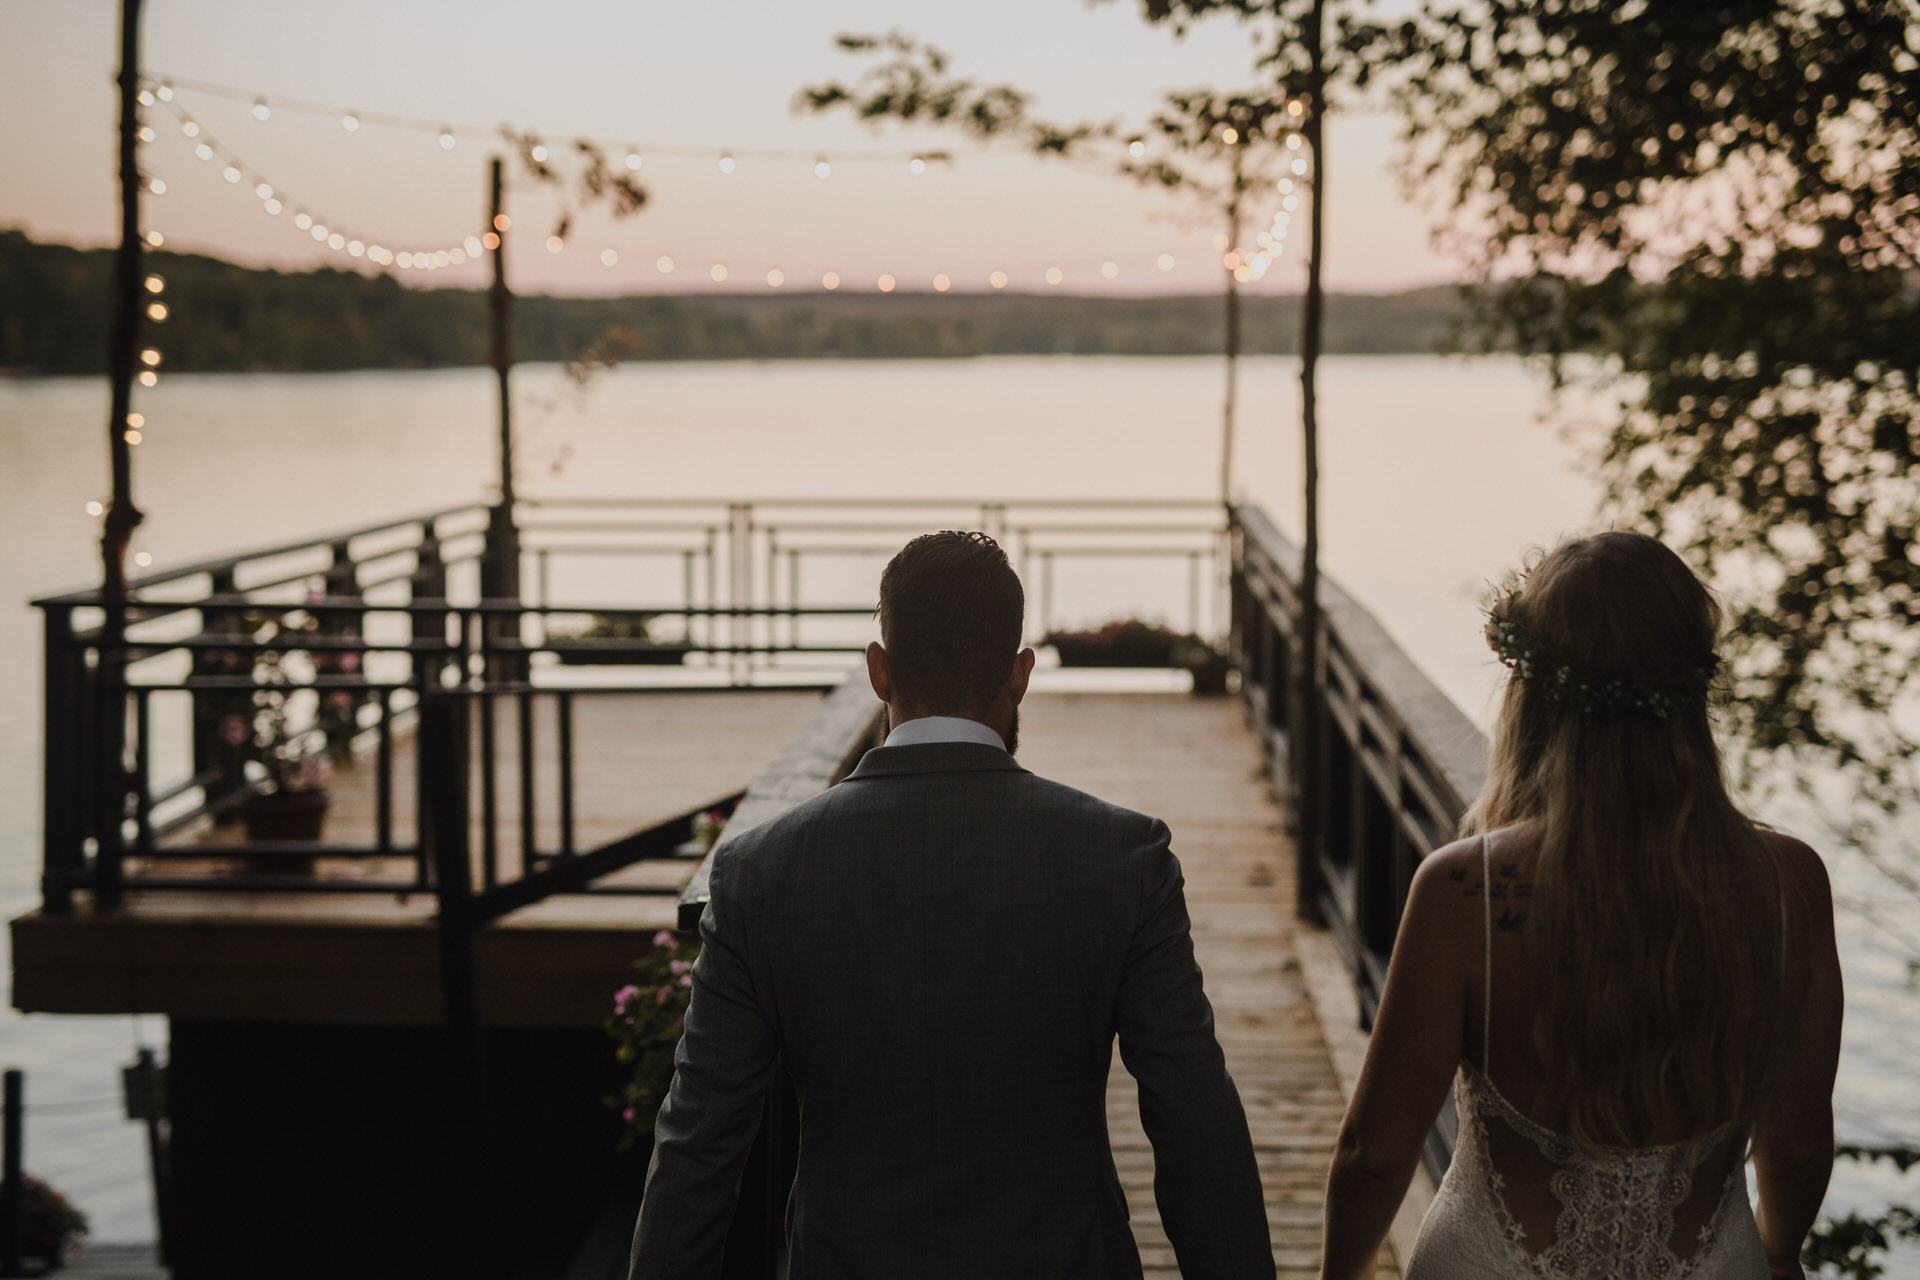 Muskoka Wedding - sunset on the dock